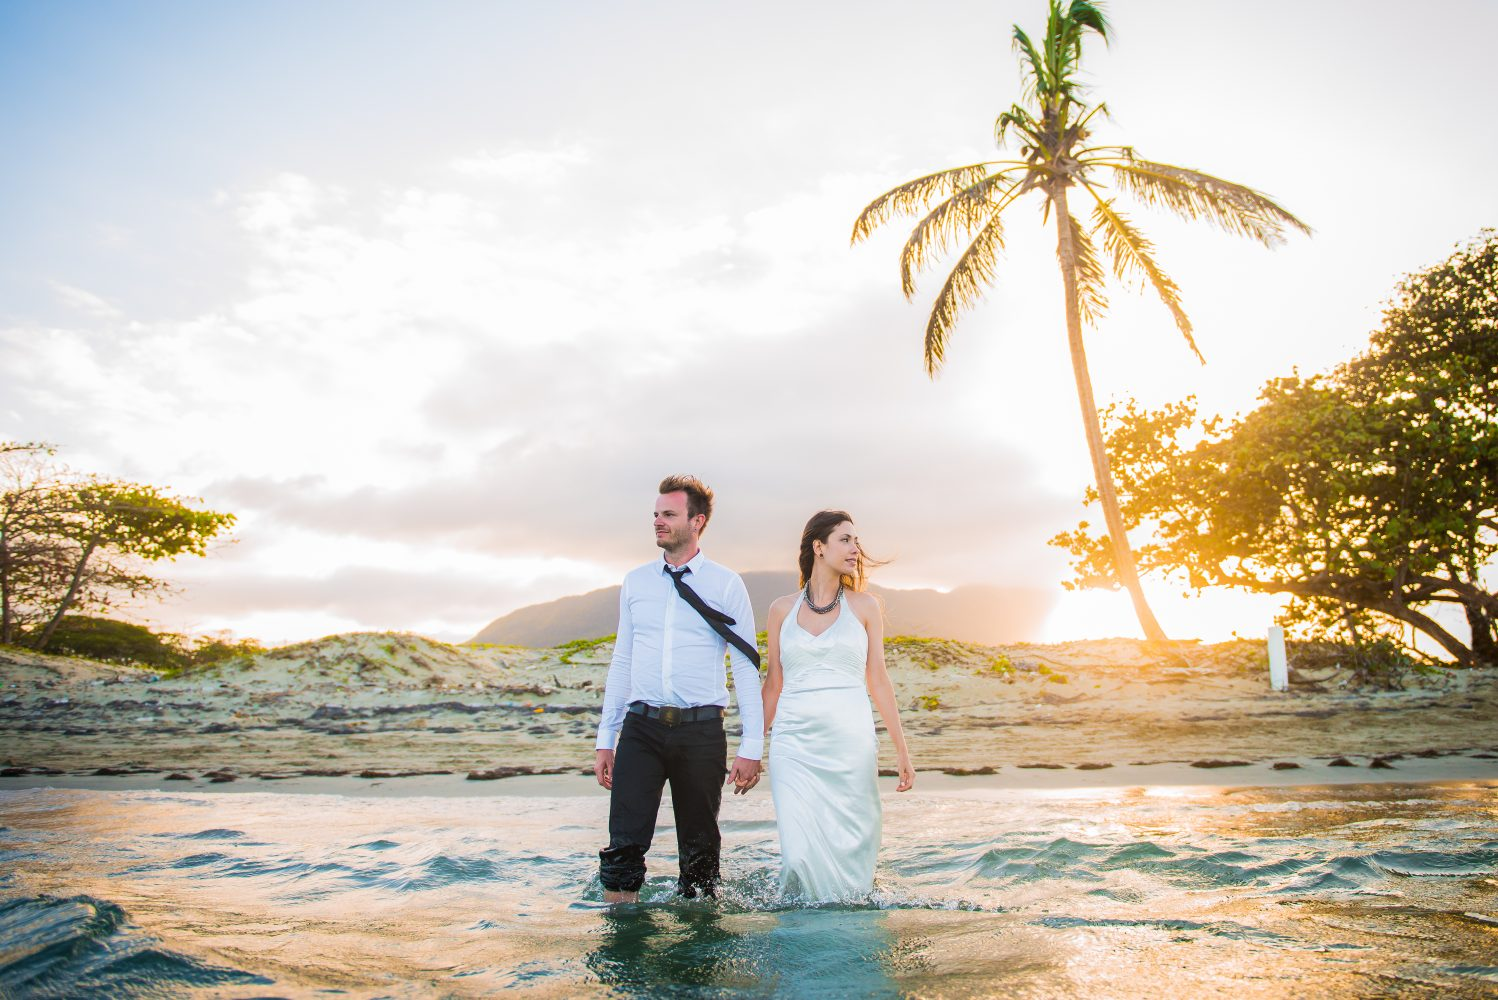 A beautiful ocean sunset in the Dominican Rebublic for the Bride and Grooms Destination Wedding | 3Haus Photographics